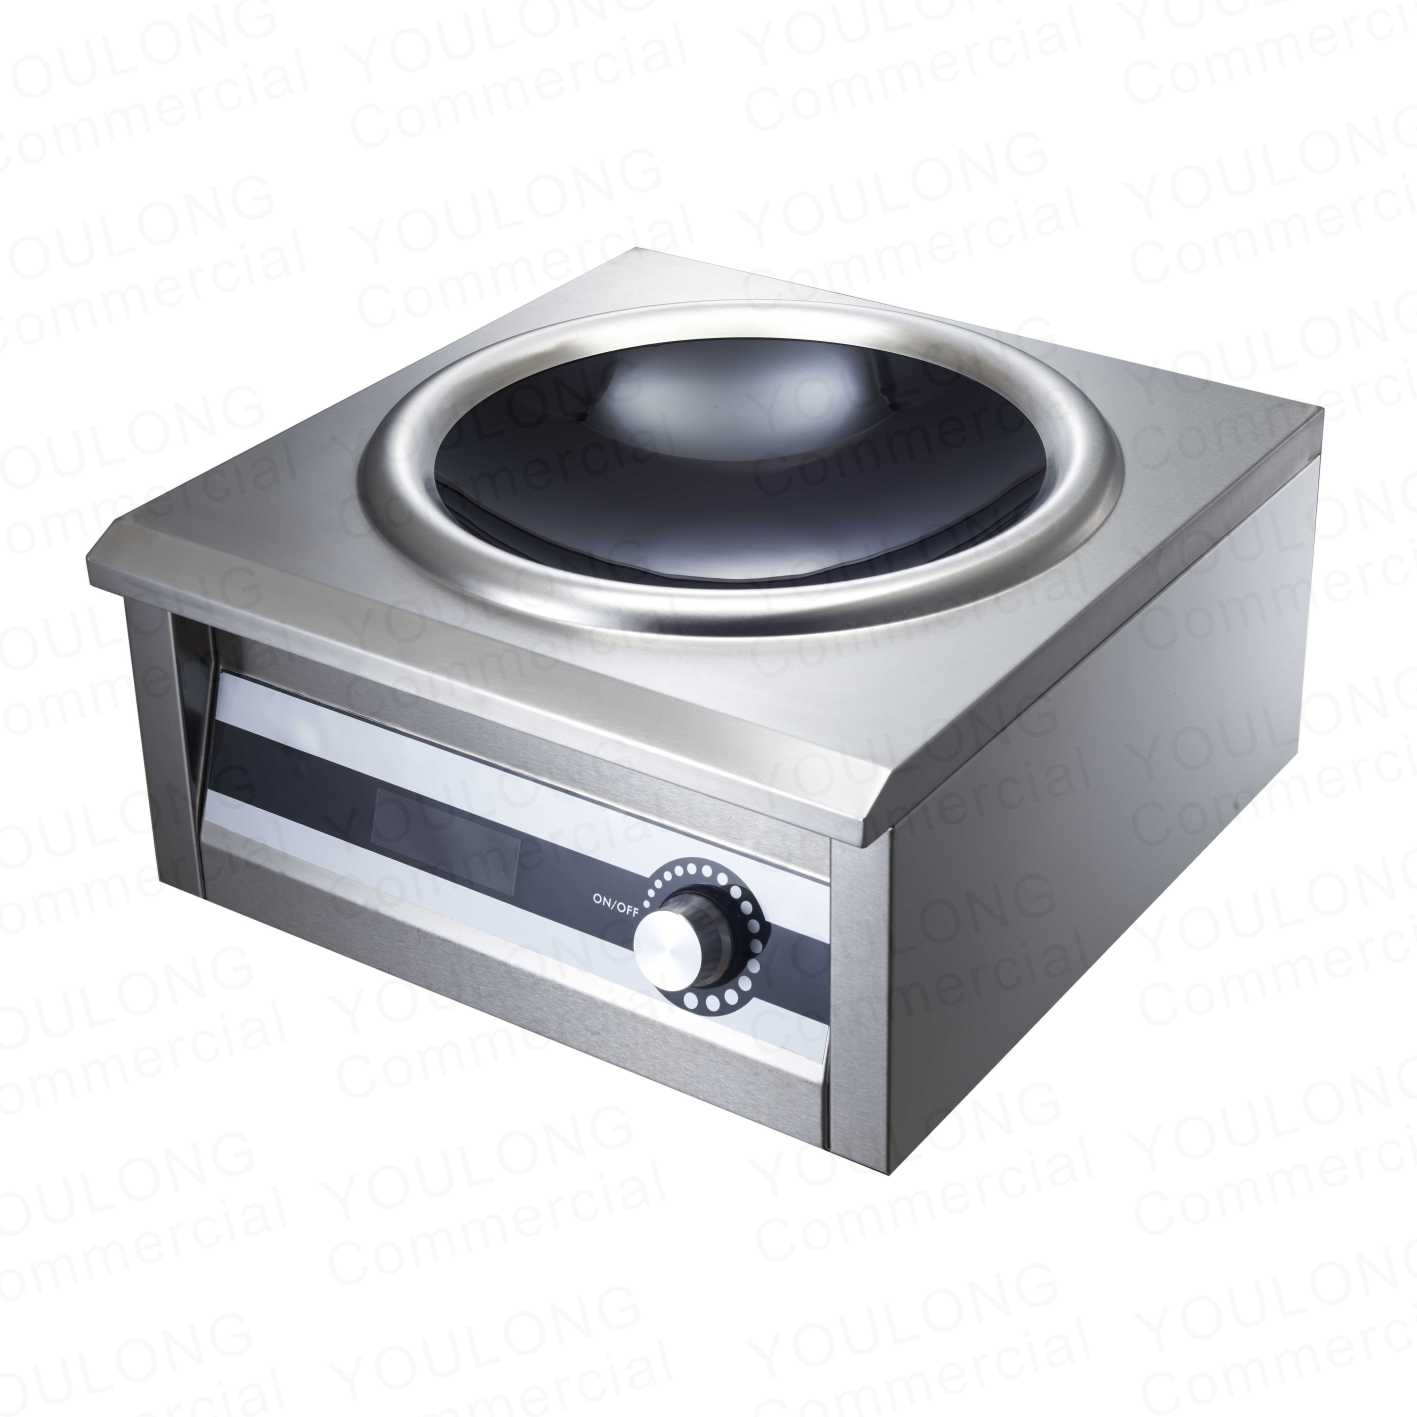 induction cooker C5102-KW Knob Control